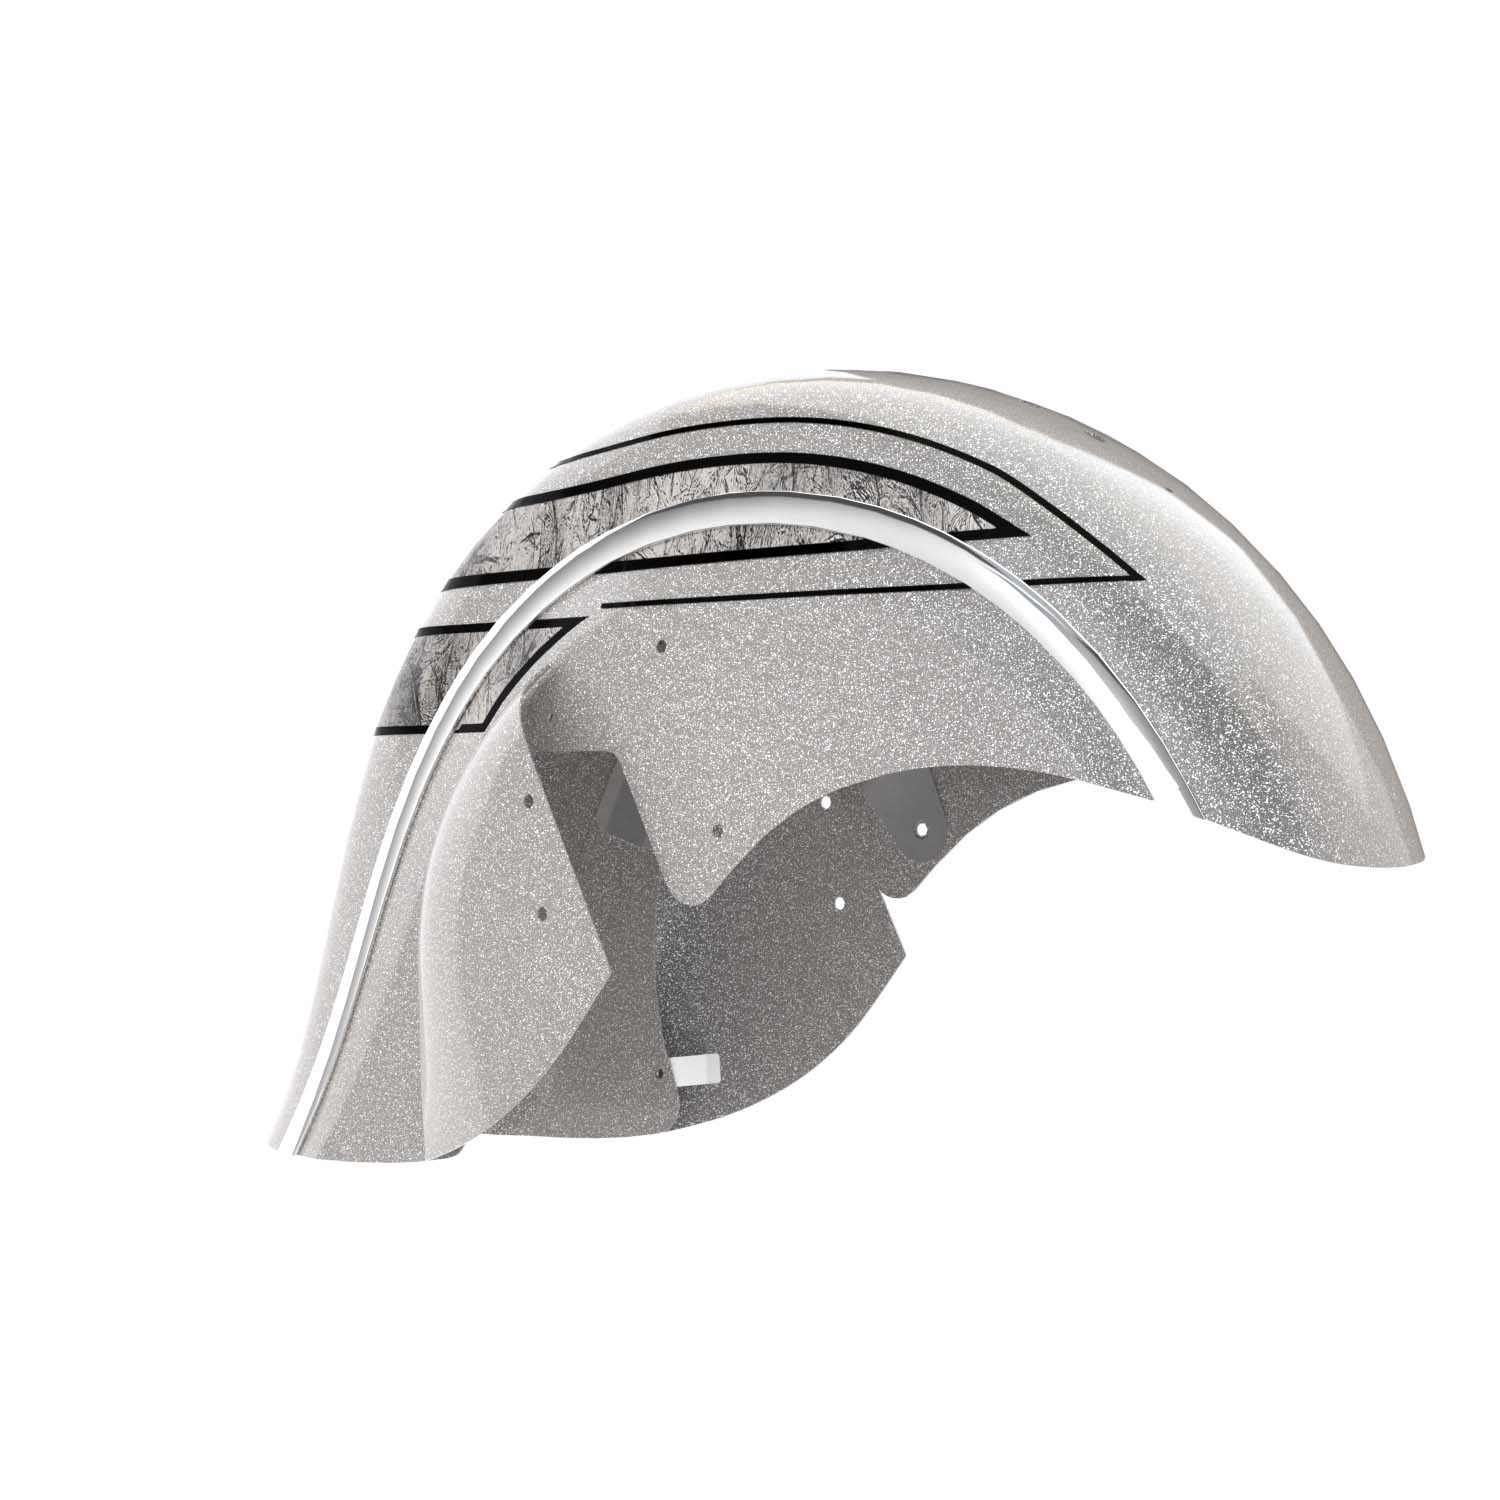 Valance Front Fender - Black Hills Silver with Marble Accents